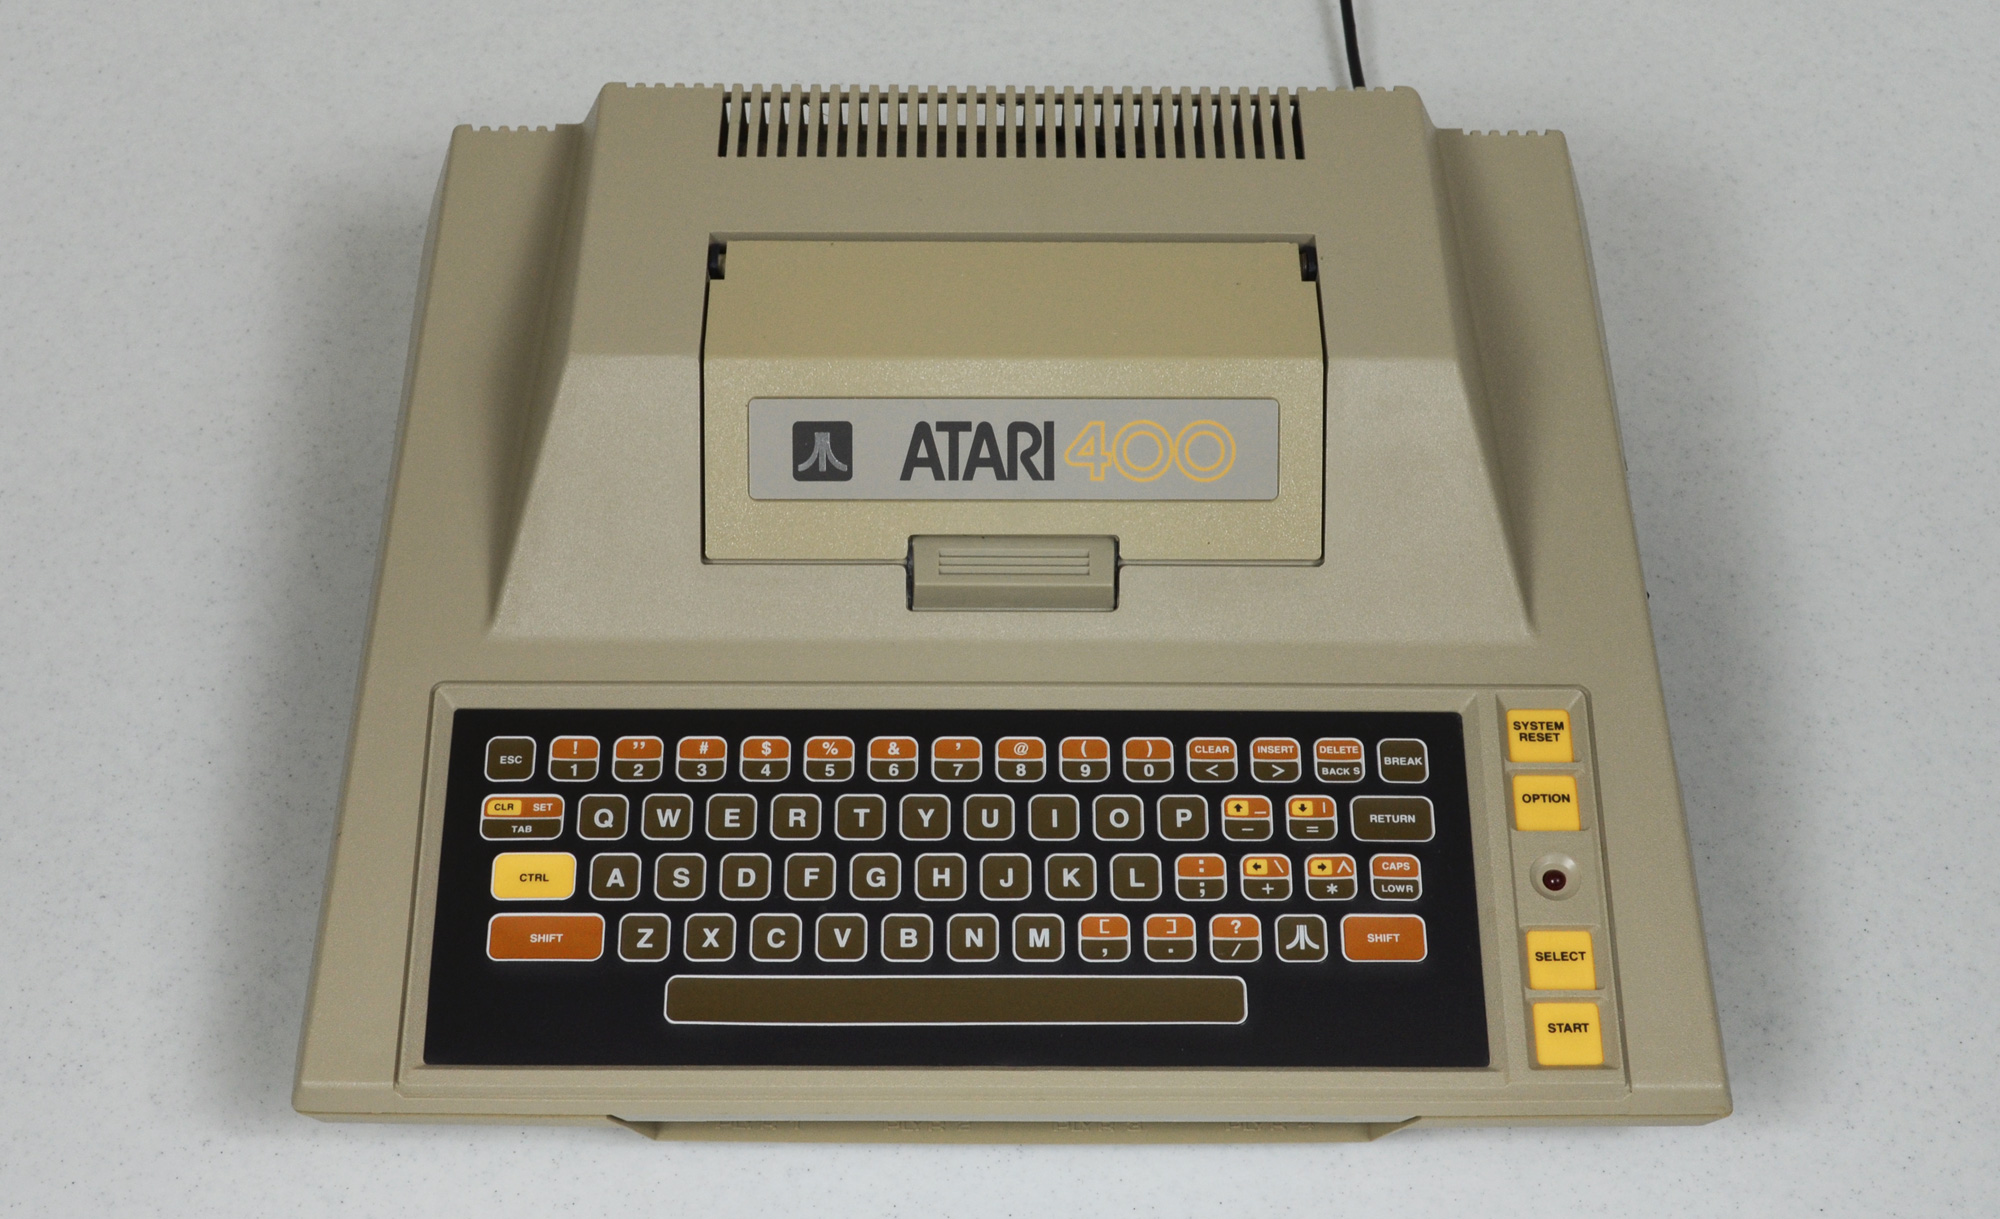 2000x1219 > Atari 400 Wallpapers